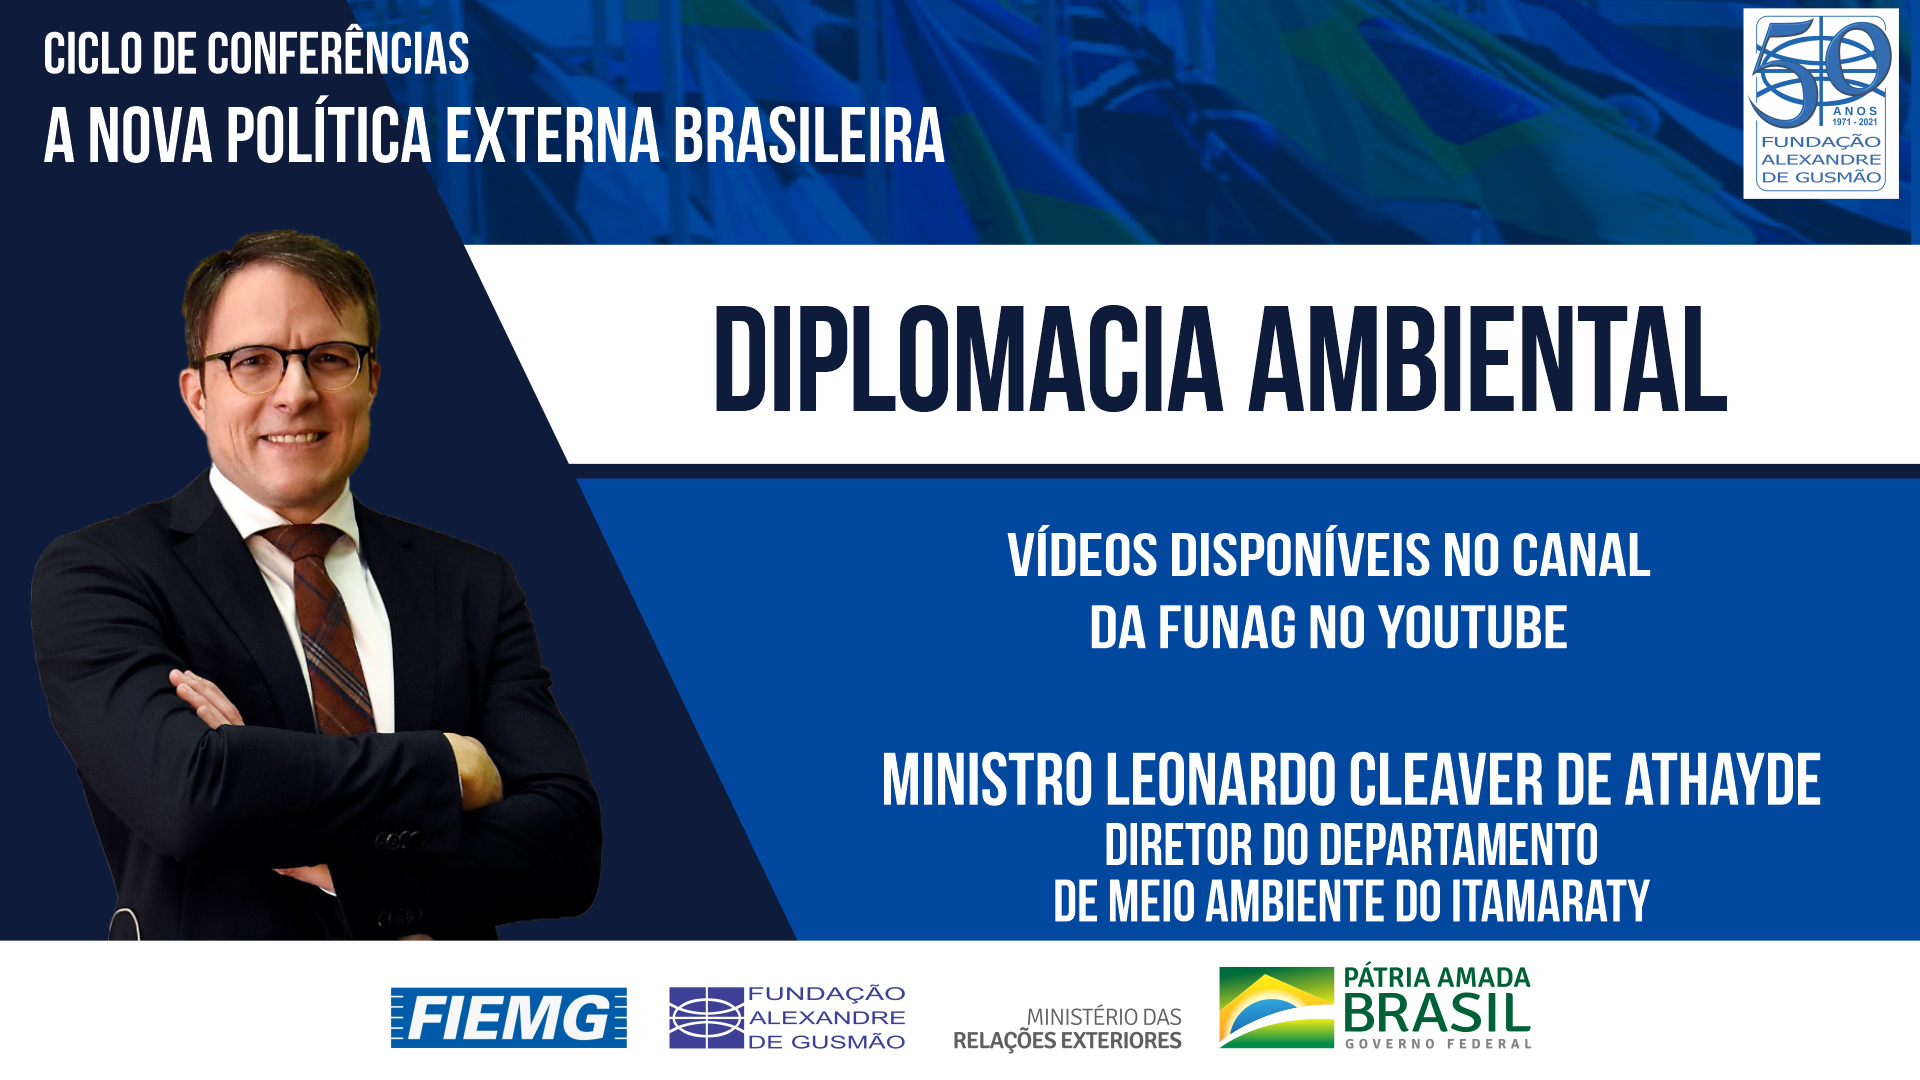 Watch the videos of the conference of the Director of the Department for the Environment of the Ministry of Foreign Affairs, Minister Leonardo Cleaver de Athayde